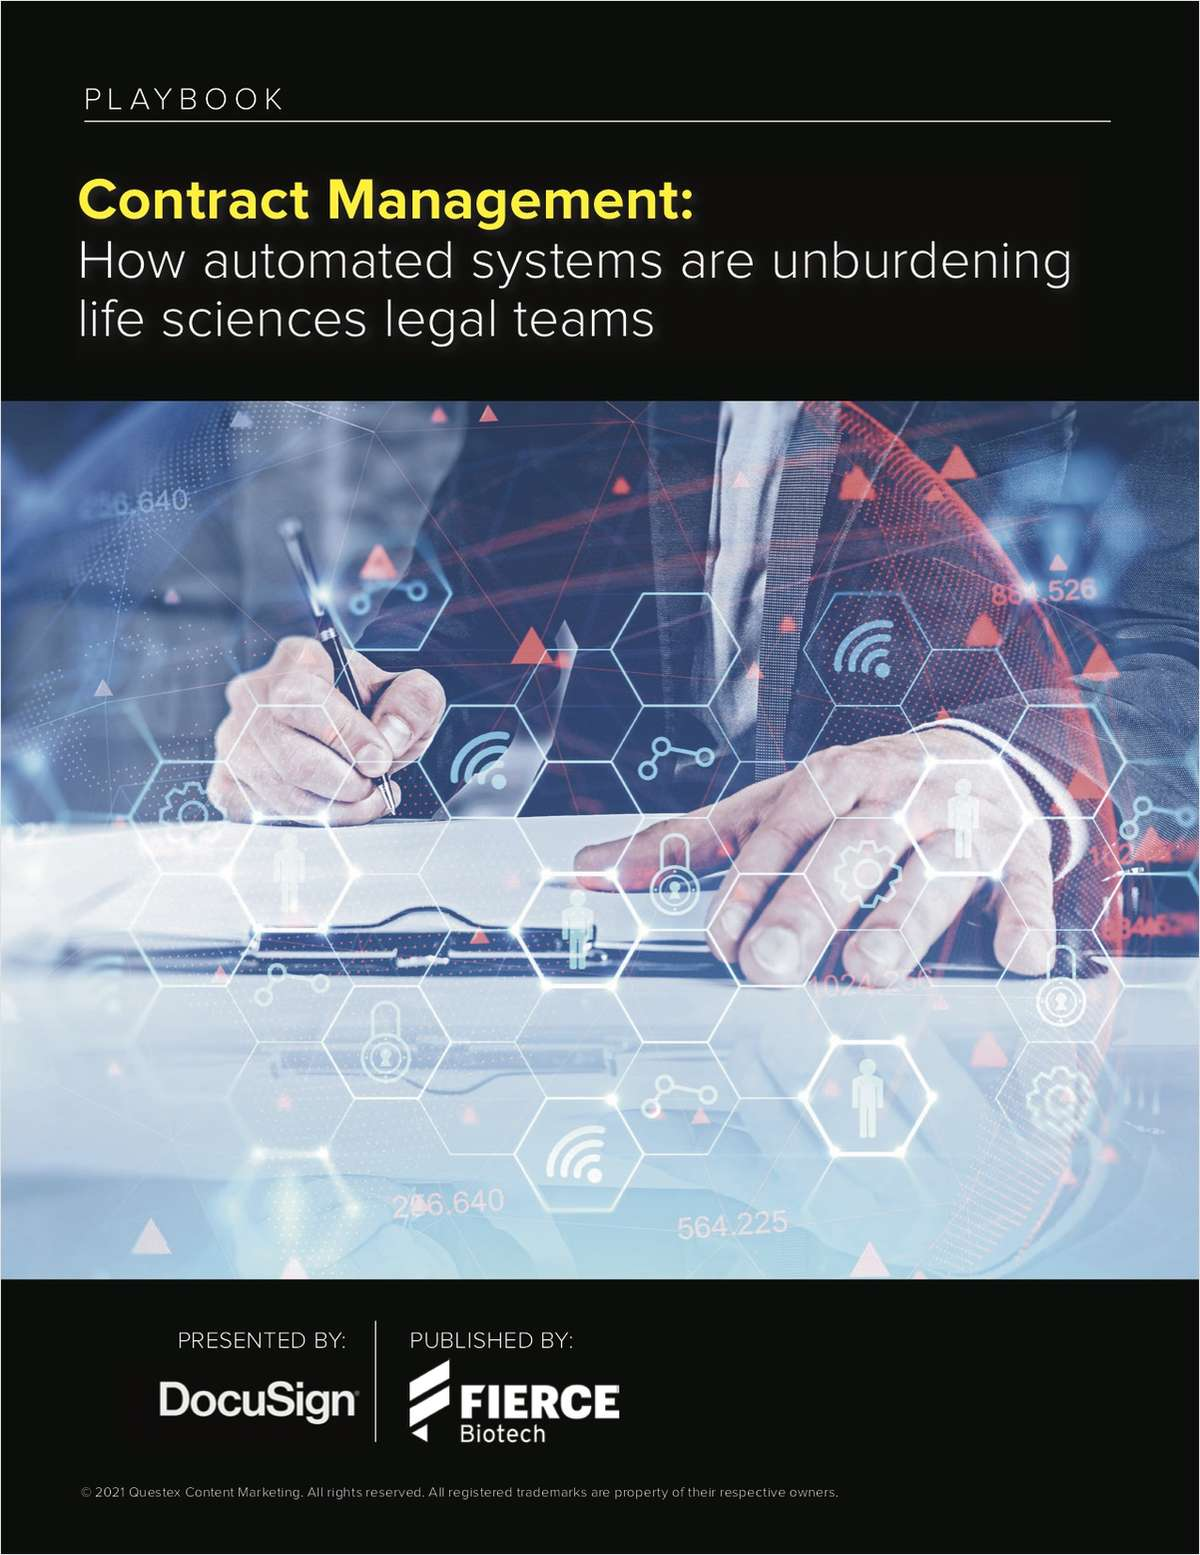 Contract management: How automated systems are unburdening life sciences legal teams